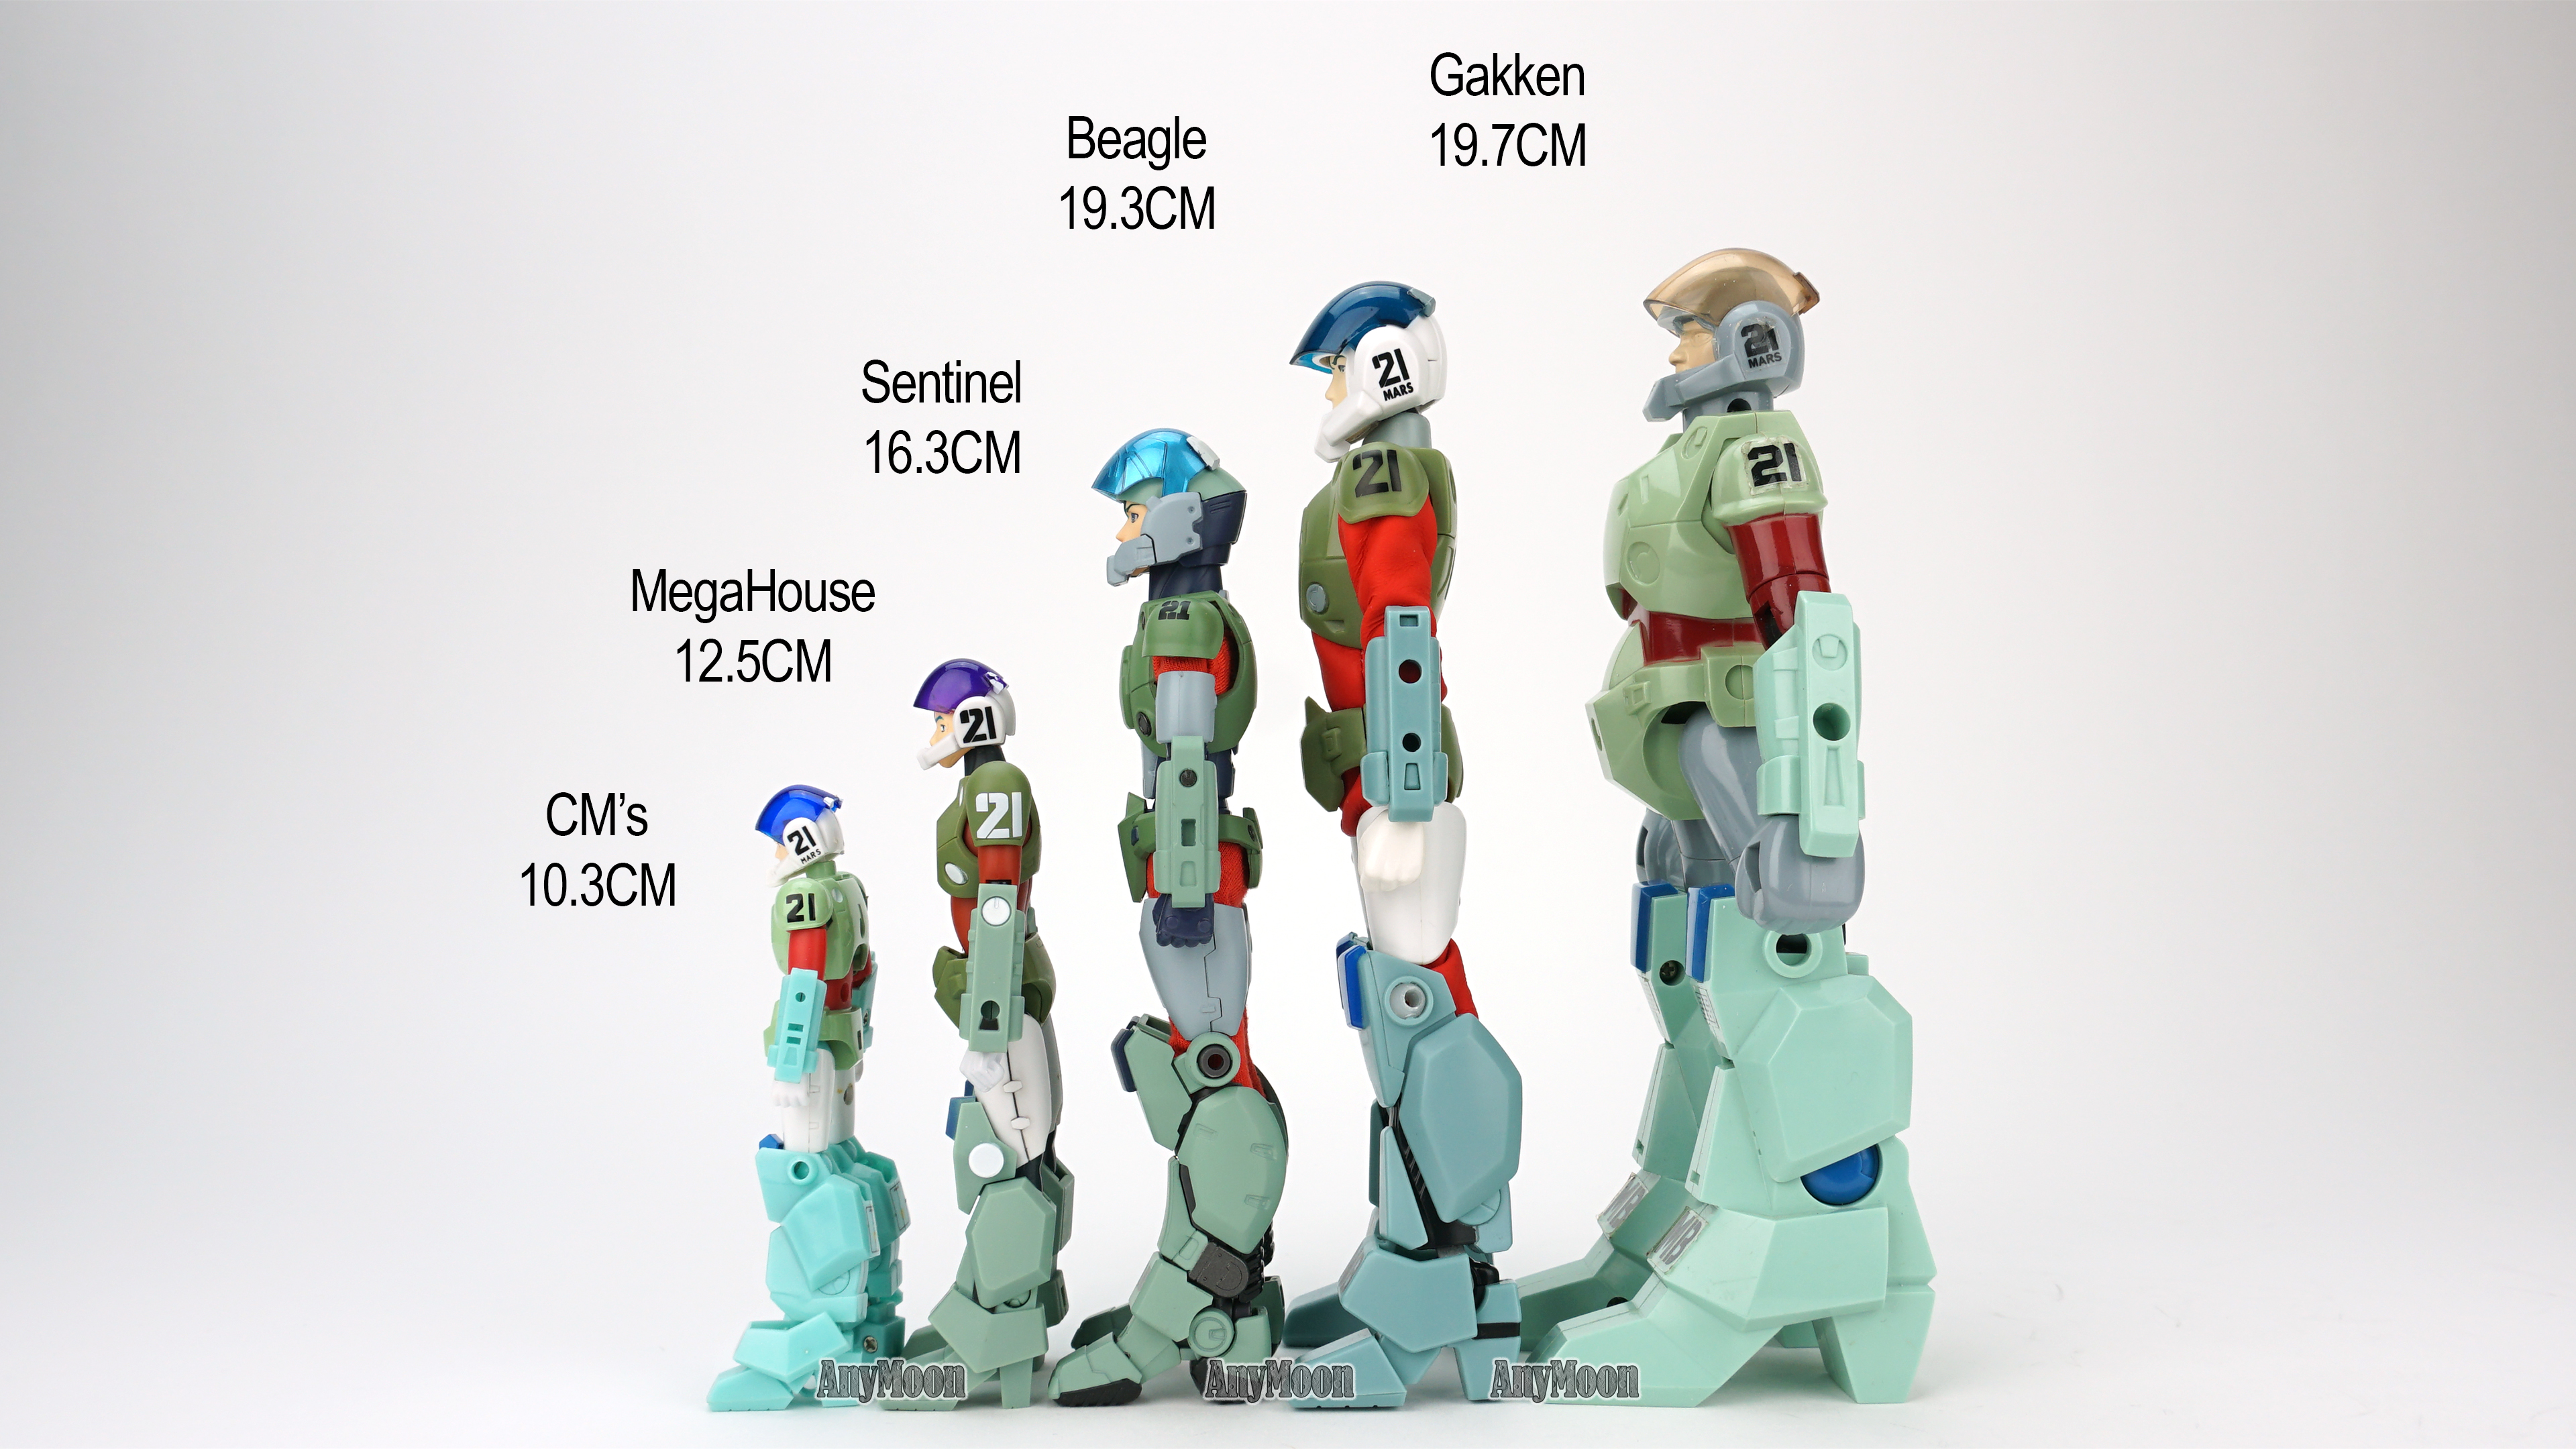 Scorched Earth Toys Sentinel Riobot 1 12 Ride Armor Top Up Jenius Balance This Score May Need Adjusting Sooner Than Later As Sales Have Been Very Brisk And Already Led To Secondary Market Mark Ups It Seems Mospeada Fans Are